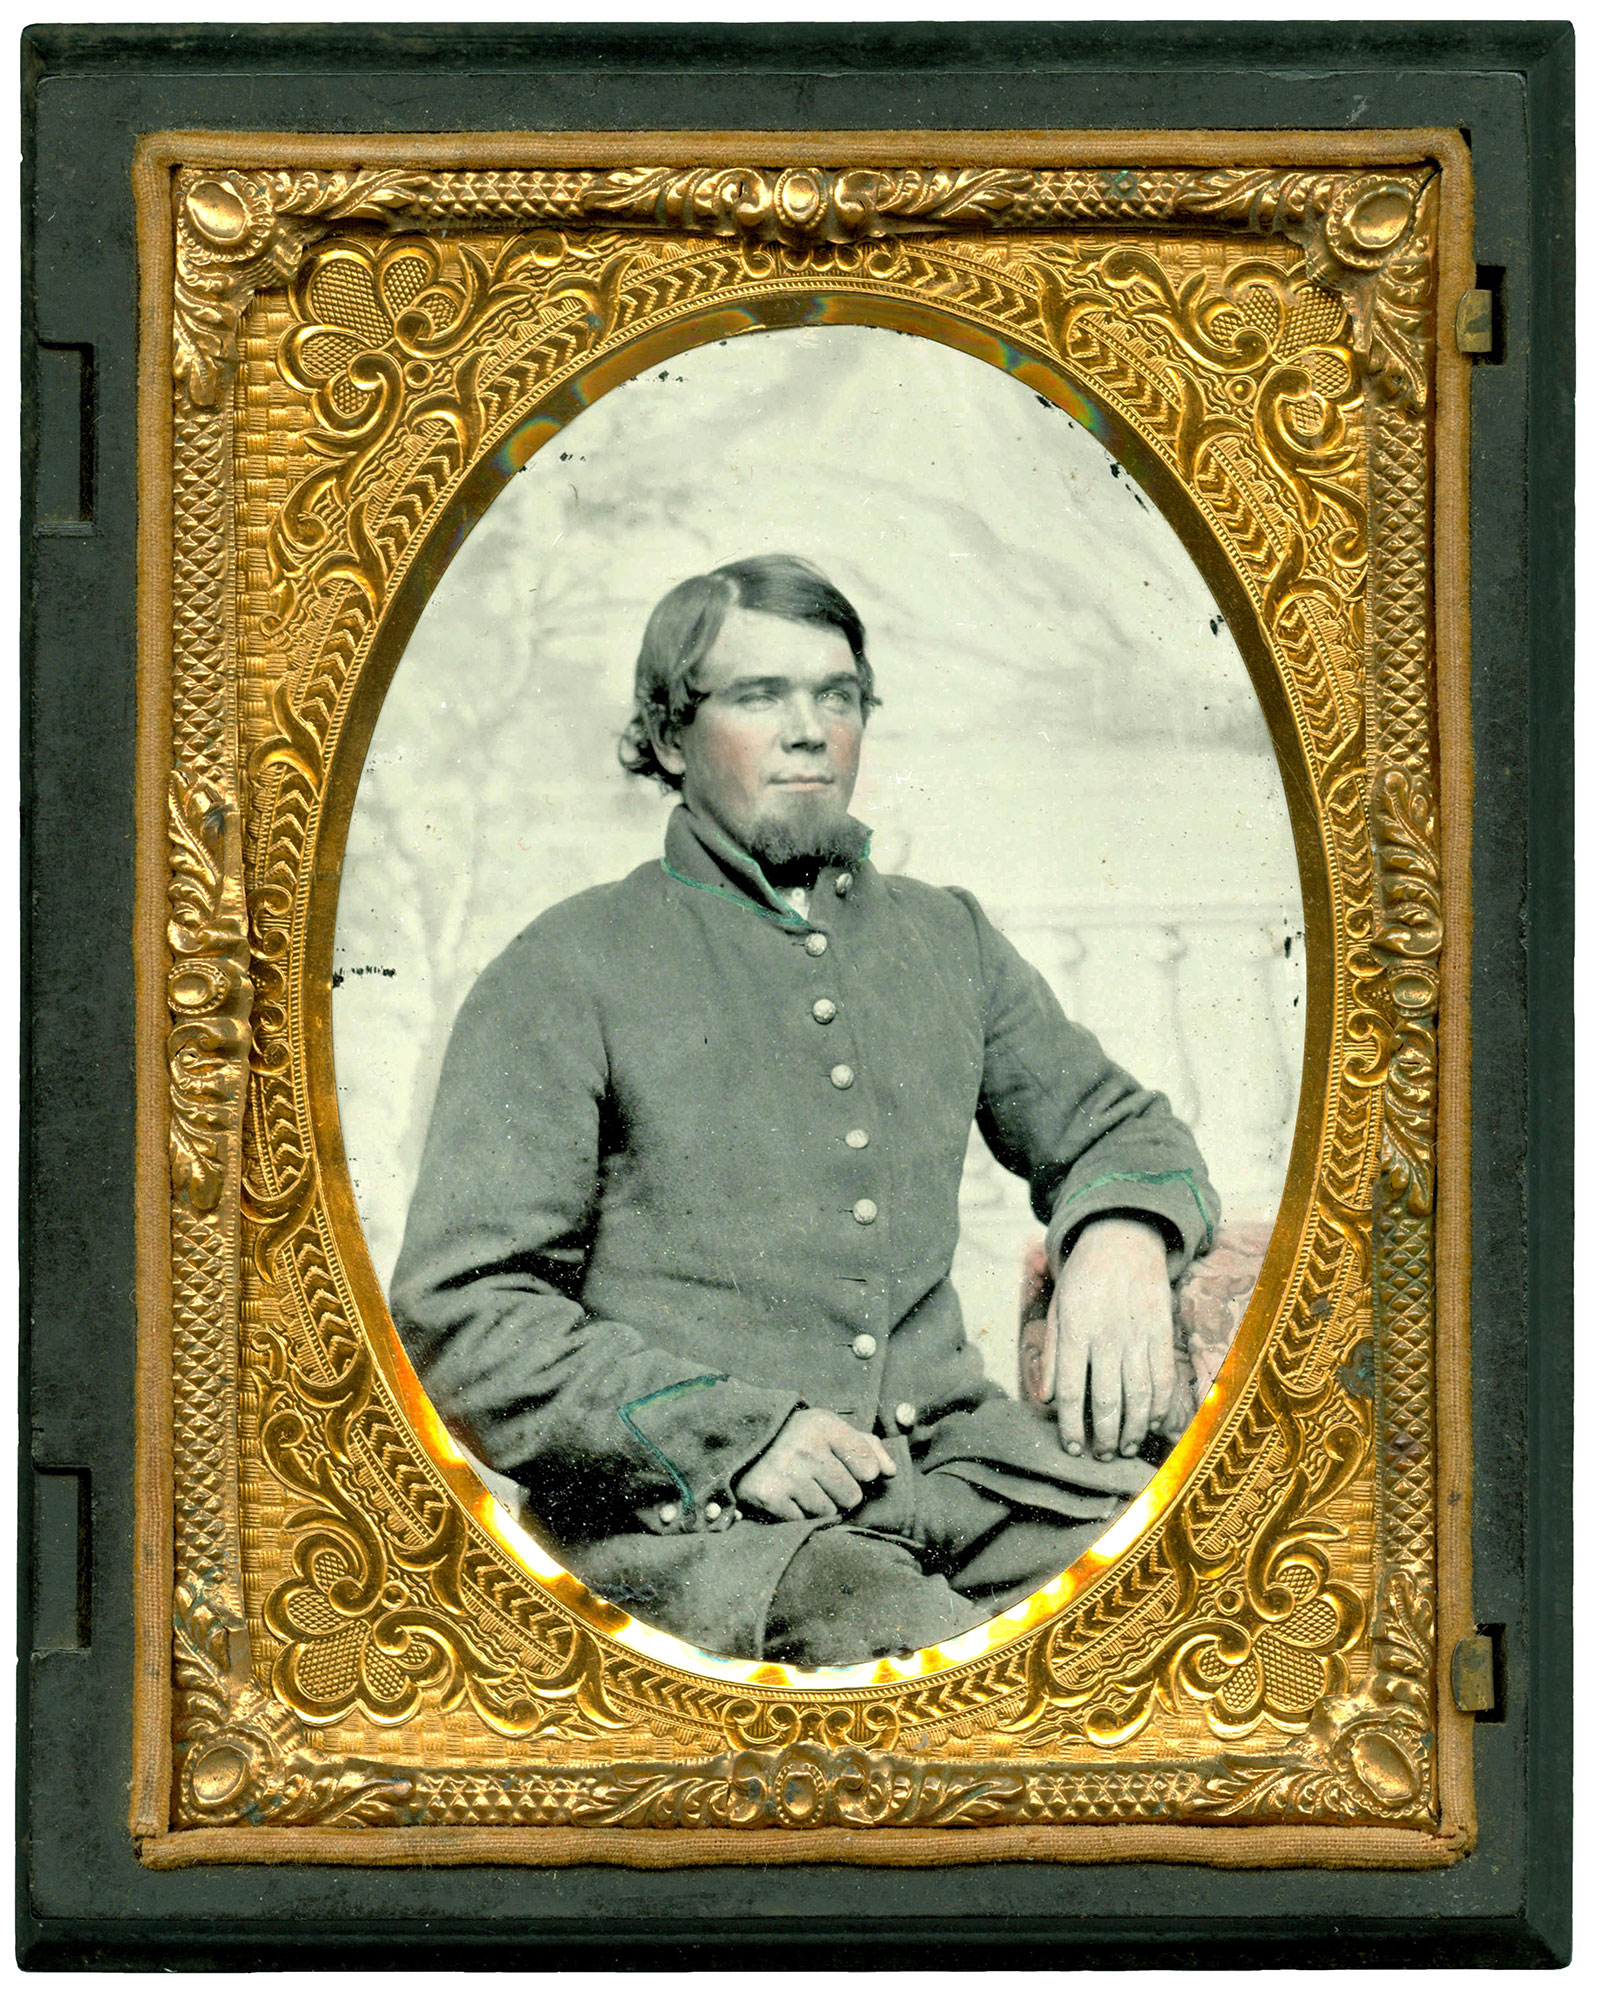 Quarter-plate ruby ambrotype by an anonymous photographer. Ron Field collection.